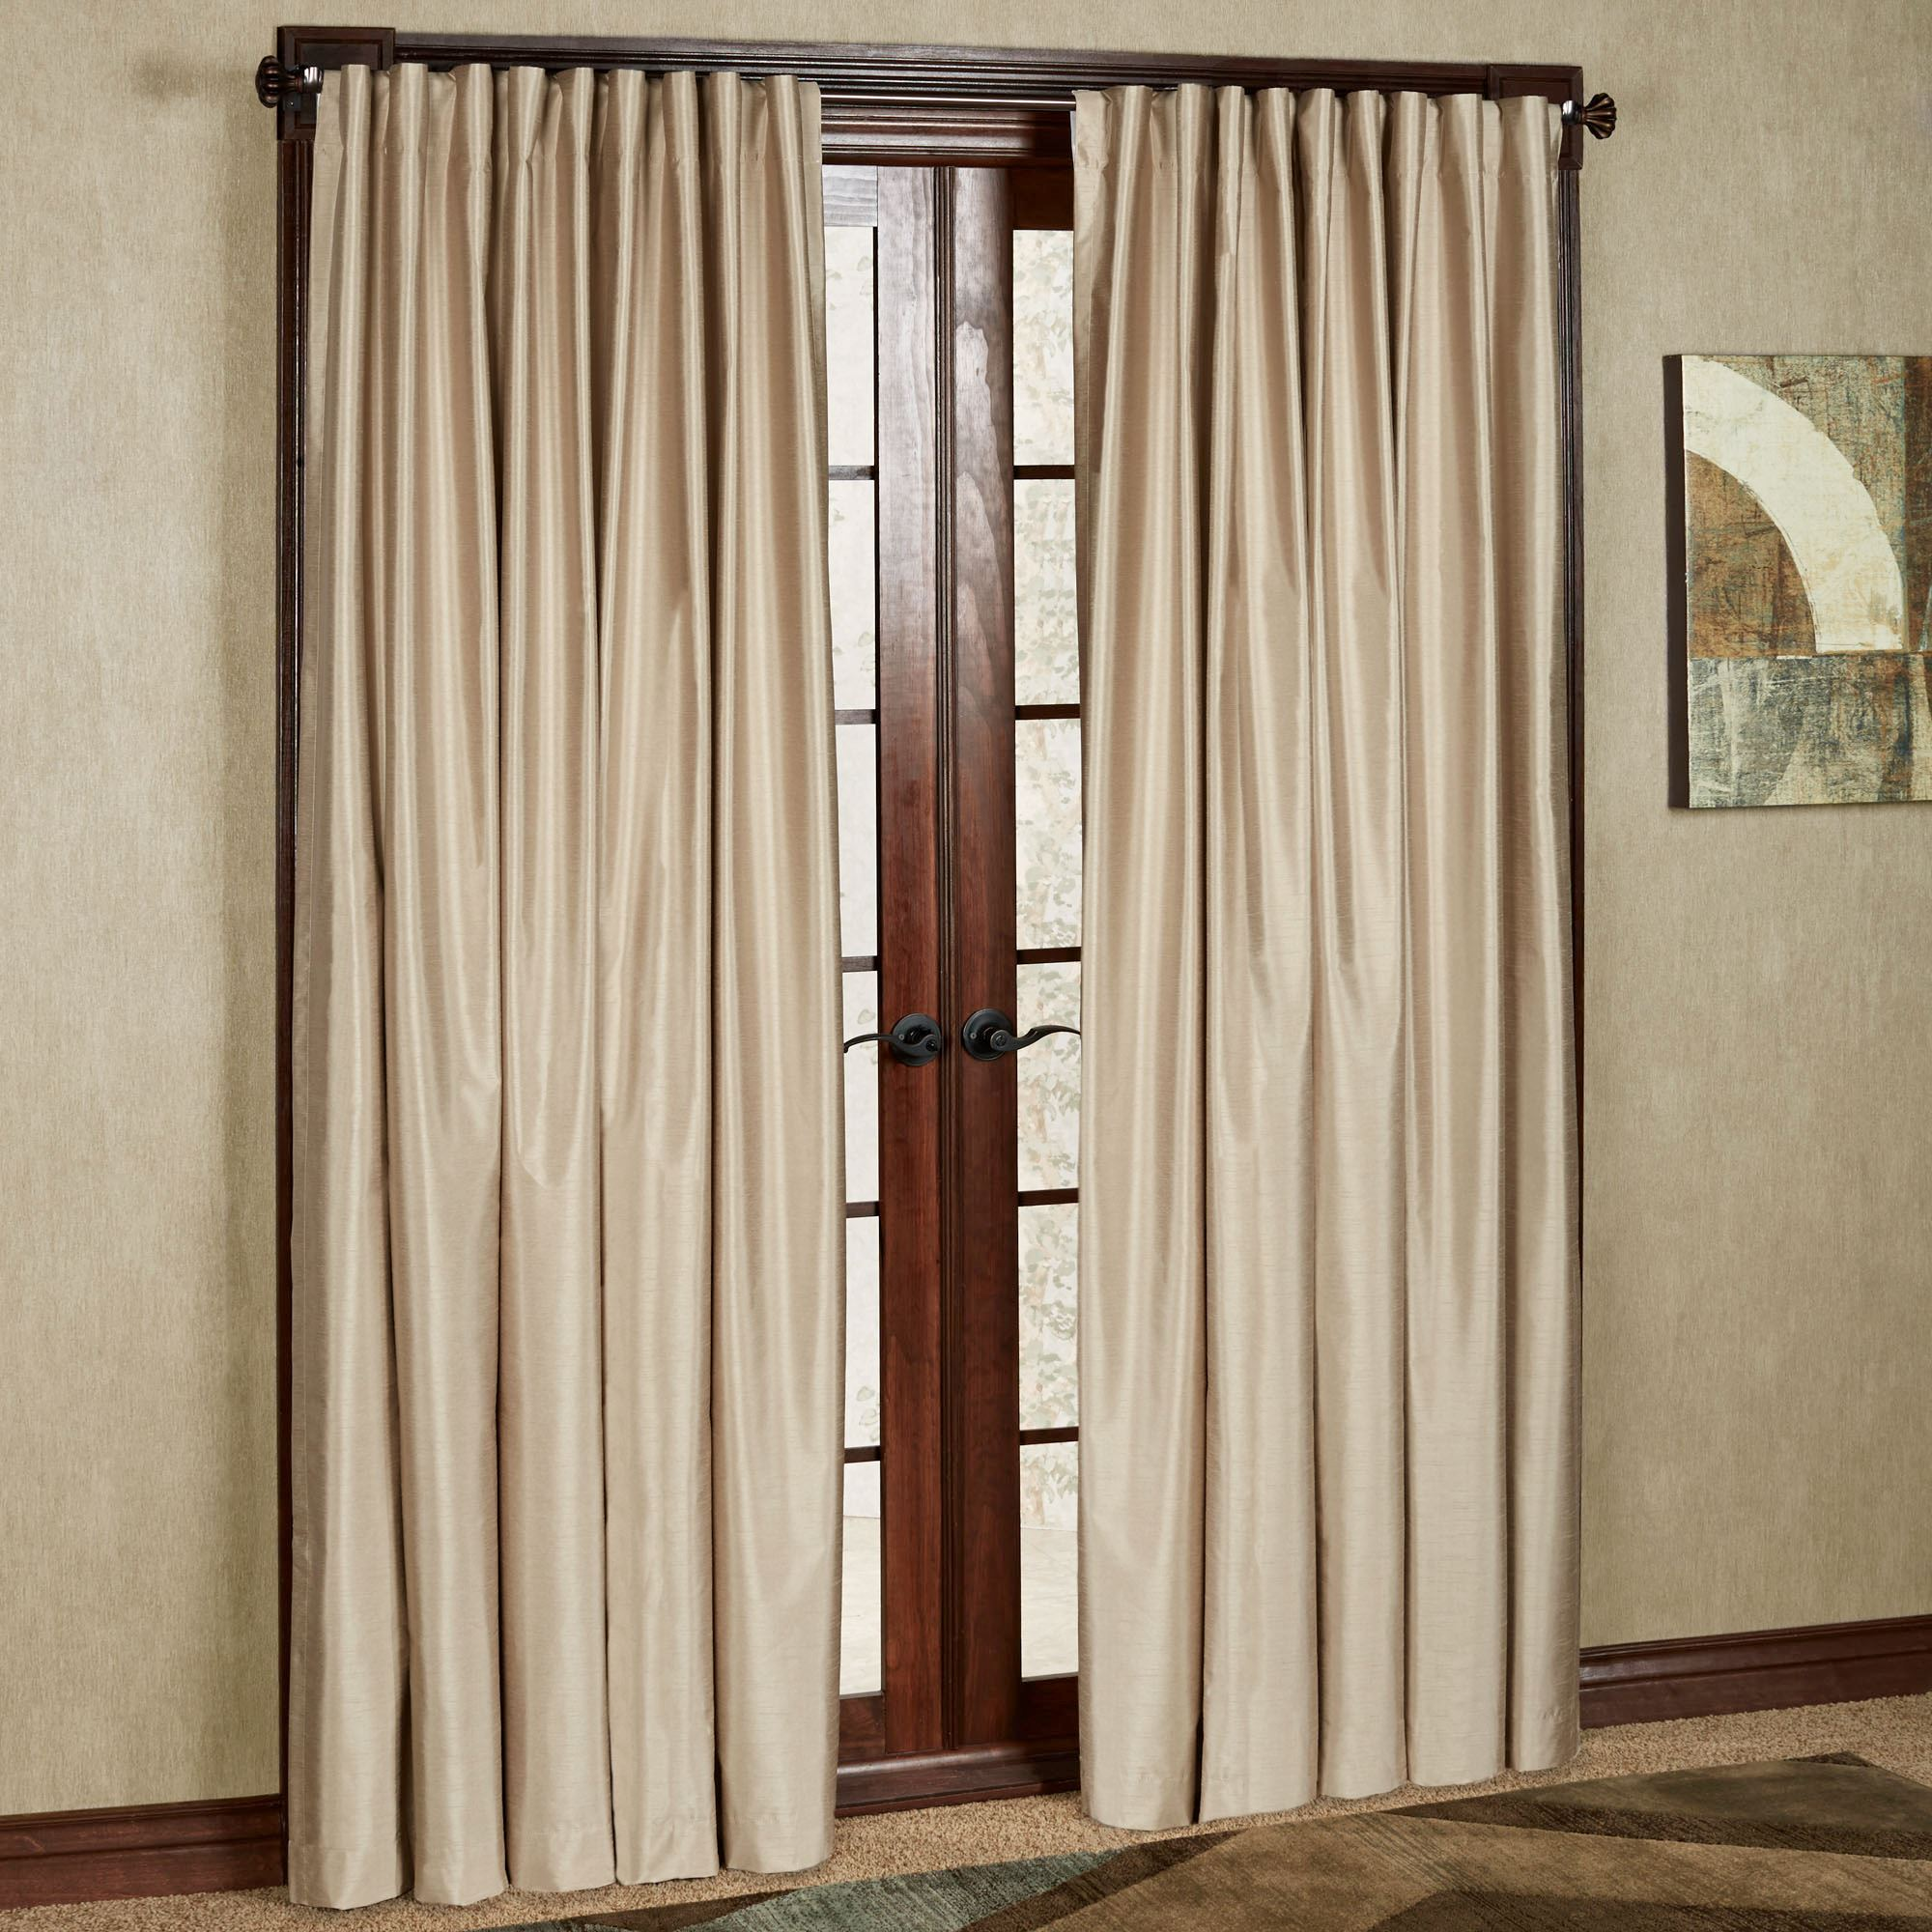 room darkening curtains fontaine back tab wide width curtain pair PBEGWTD